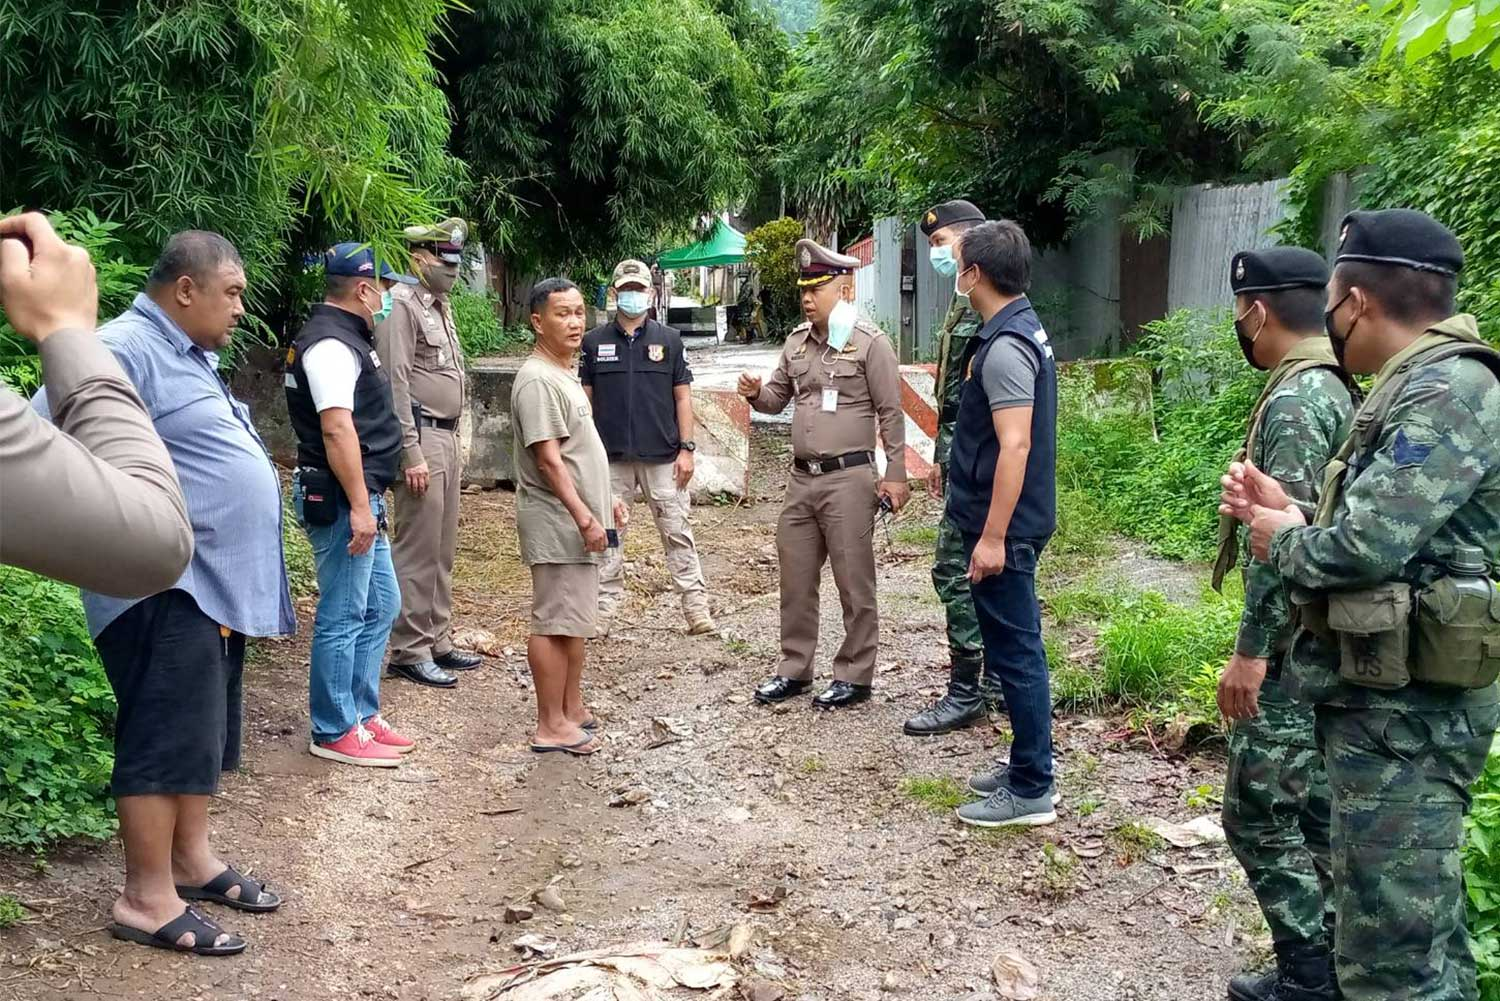 Police, soldiers and local officials inspect a natural border crossing near Three Pagoda Pass in Kanchanaburi province on Friday, to map out measures to prevent illegal immigration. (Photo: Piyarach Chongcharoen)